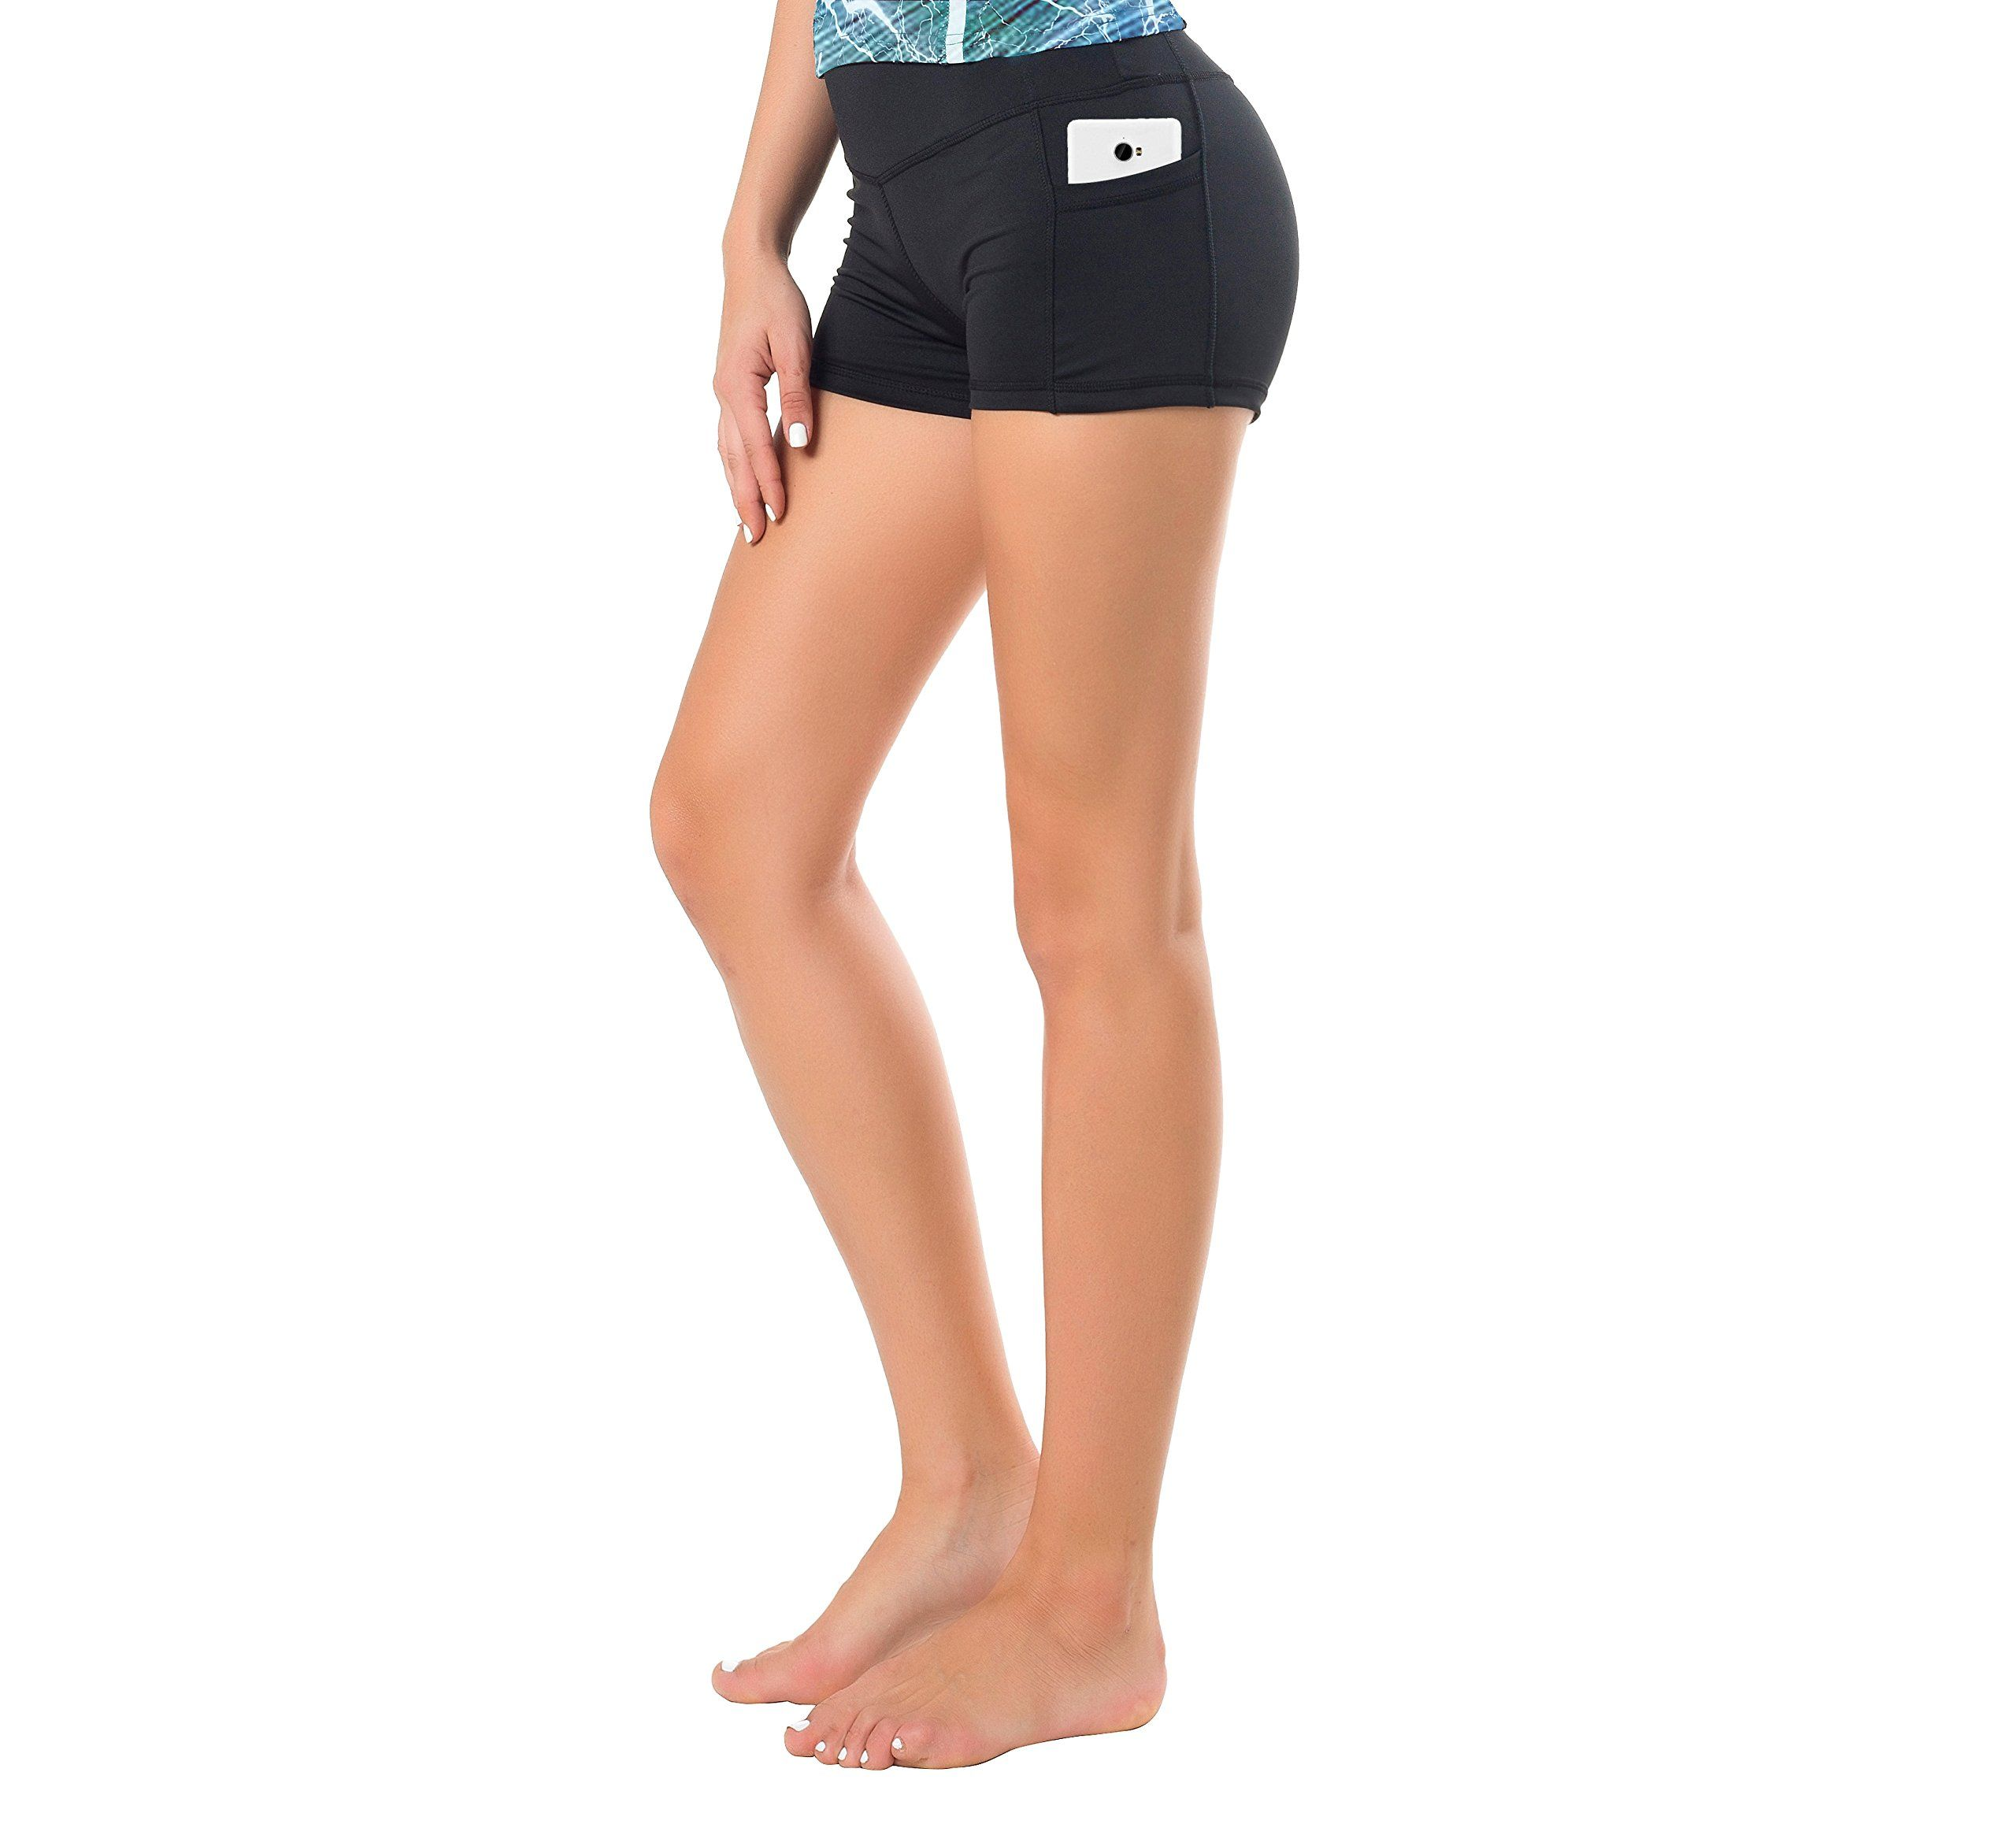 Women/'s Yoga Running Shorts Exercise Workout Tights Yoga Half Pants with Pockets